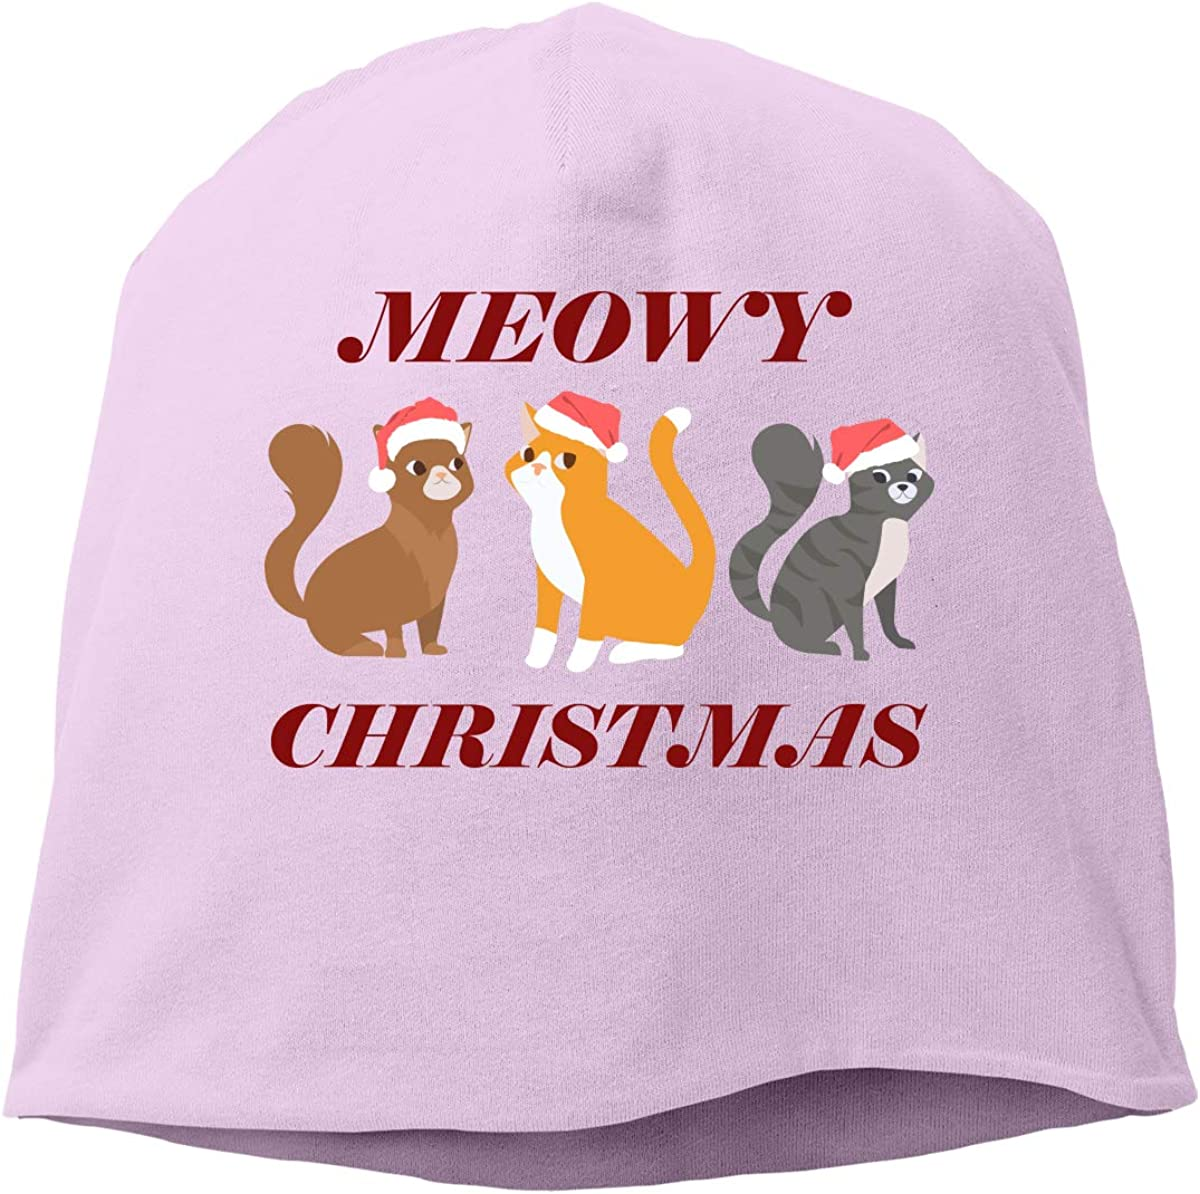 Aidear Meowy Christmas聽 Fashion Chrismas Knitted Hat Fashion Funny Cotton Hat